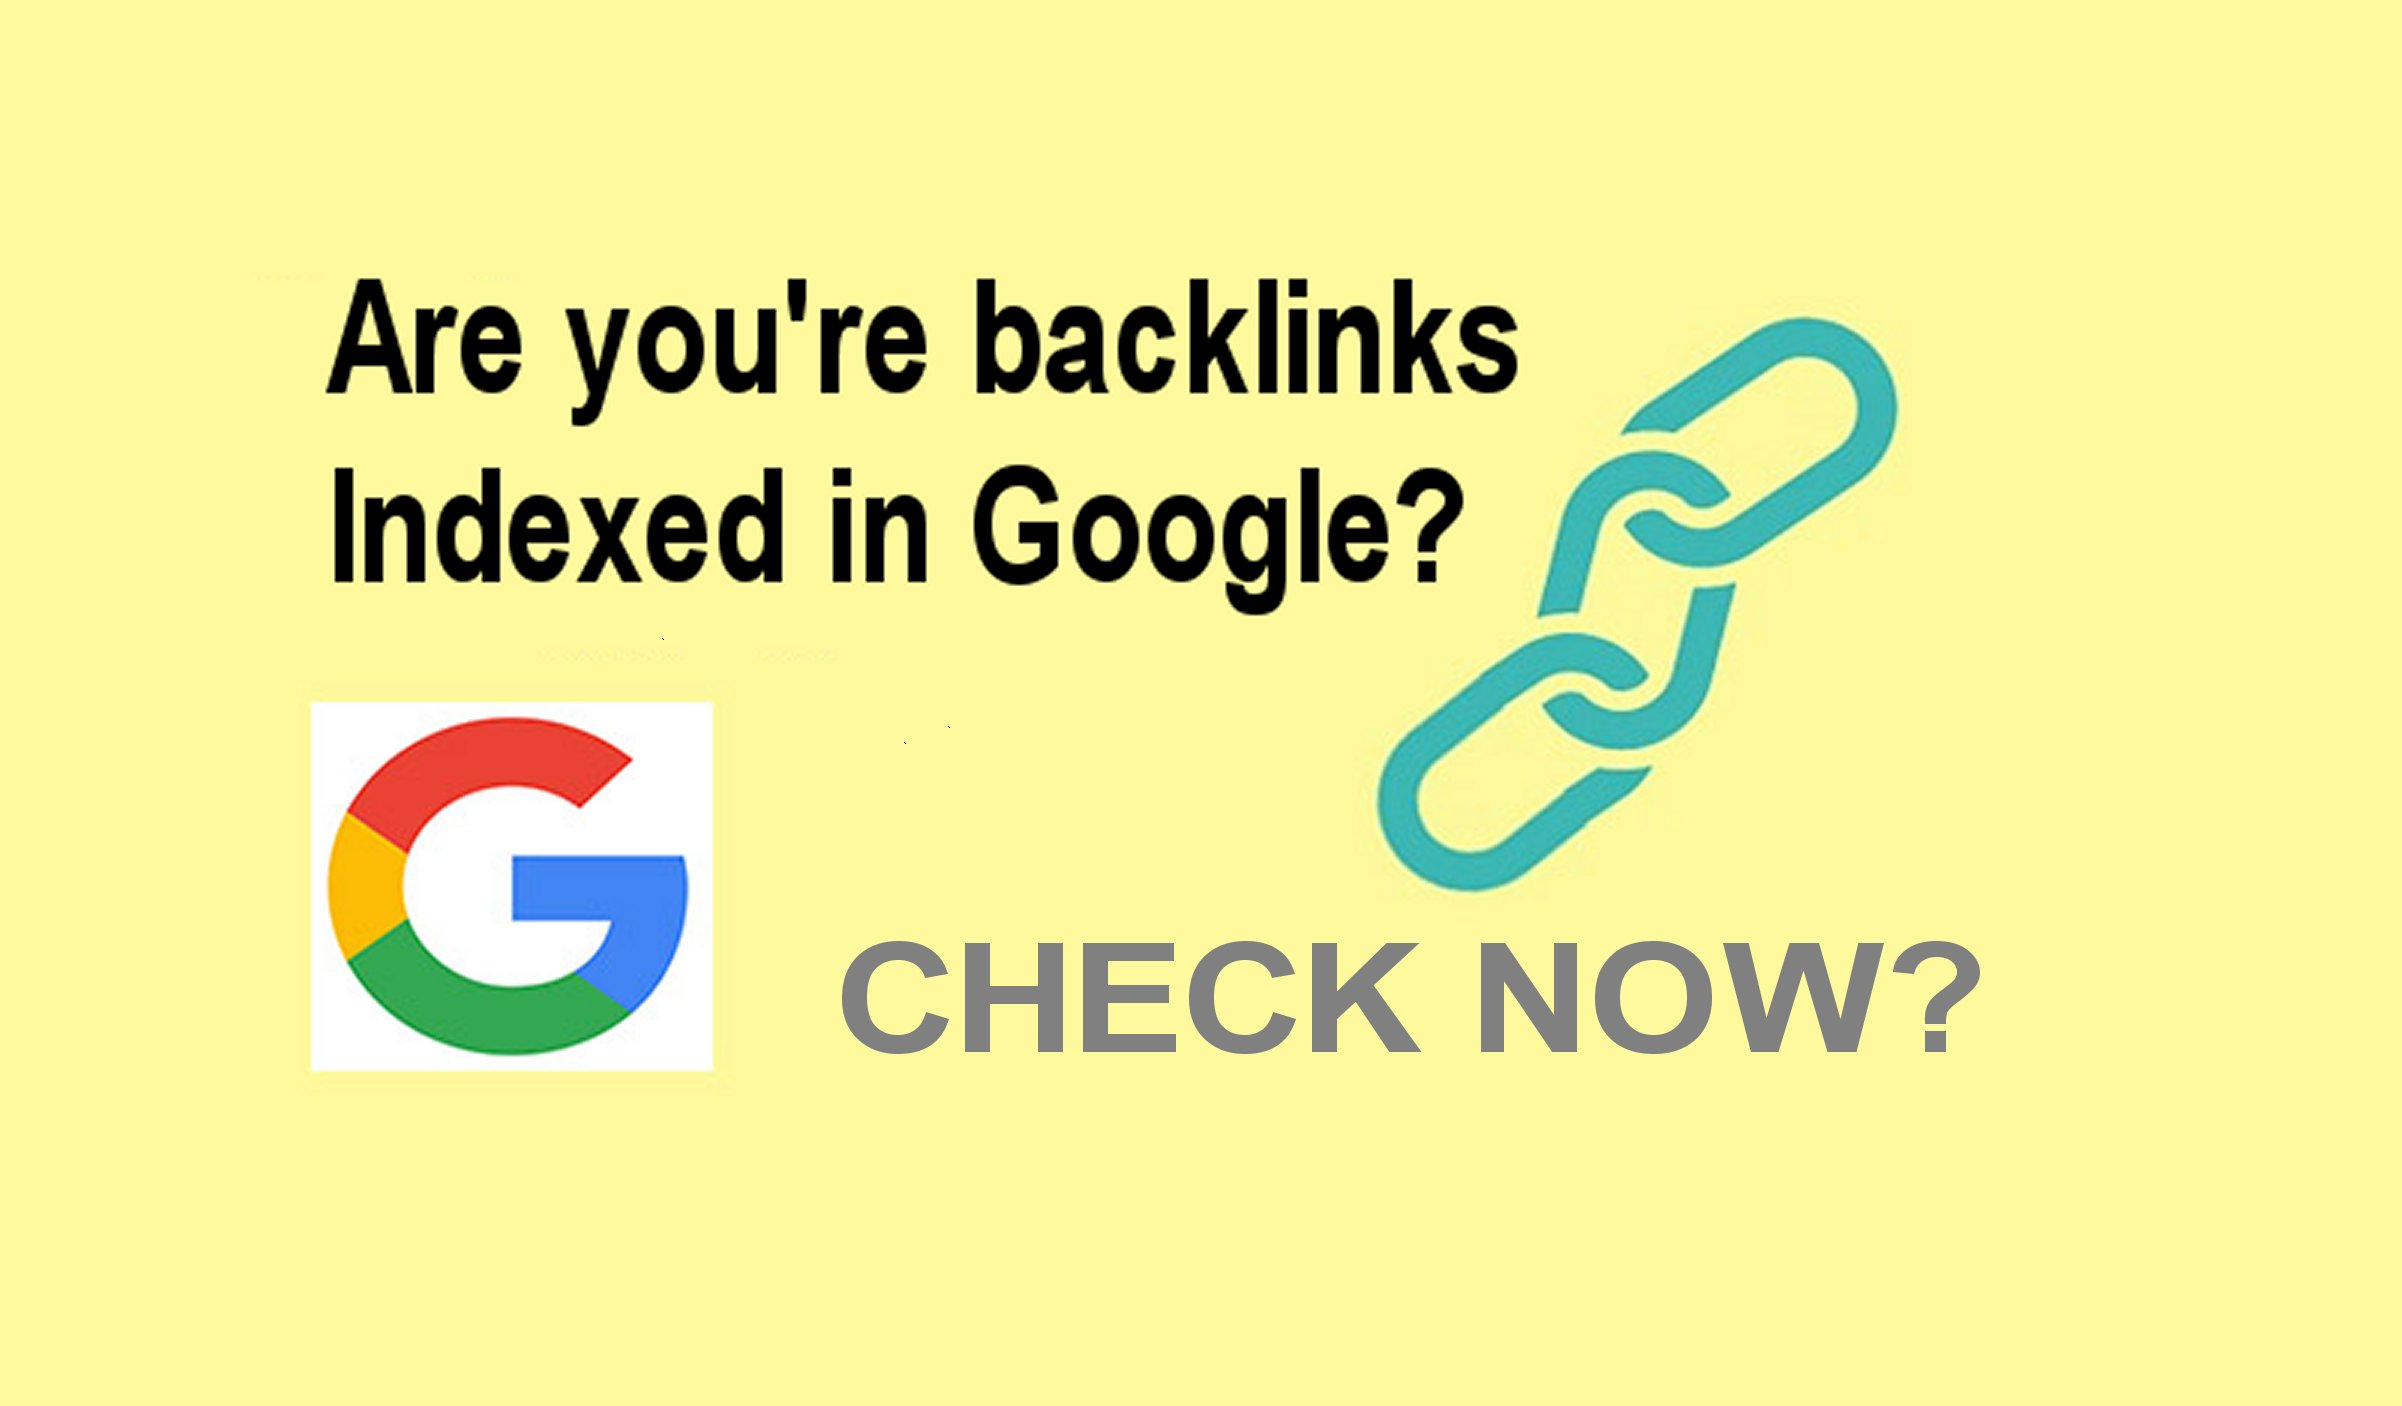 Check if you're backlinks are indexed in google